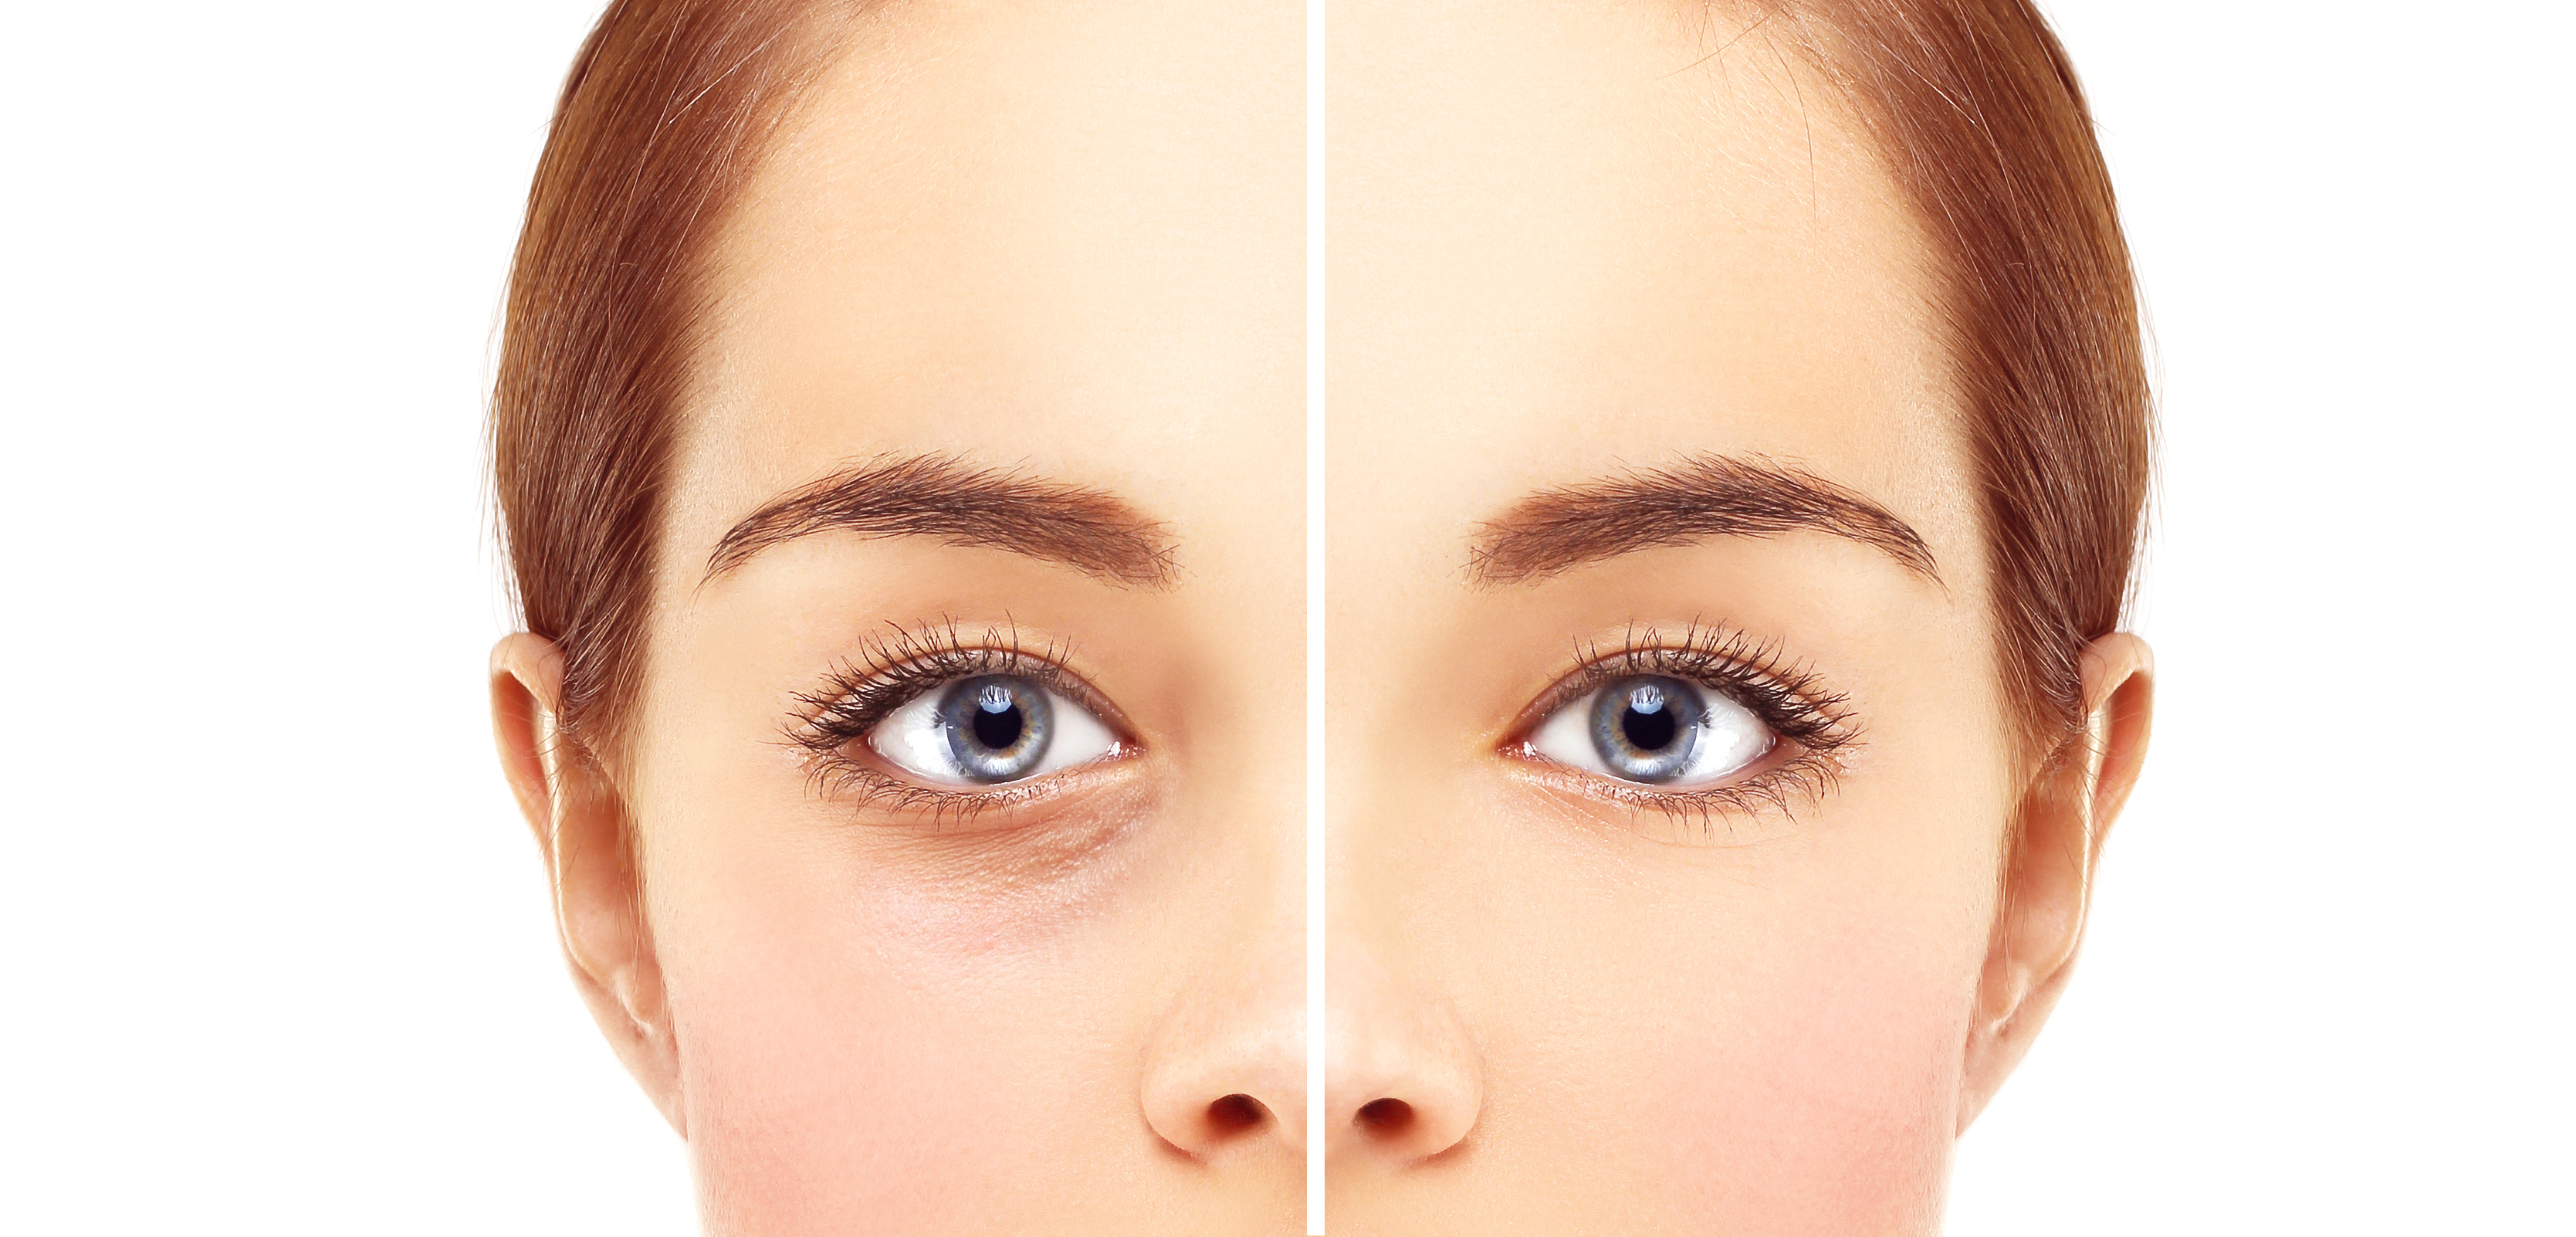 Lower-Eyelid Blepharoplasty.